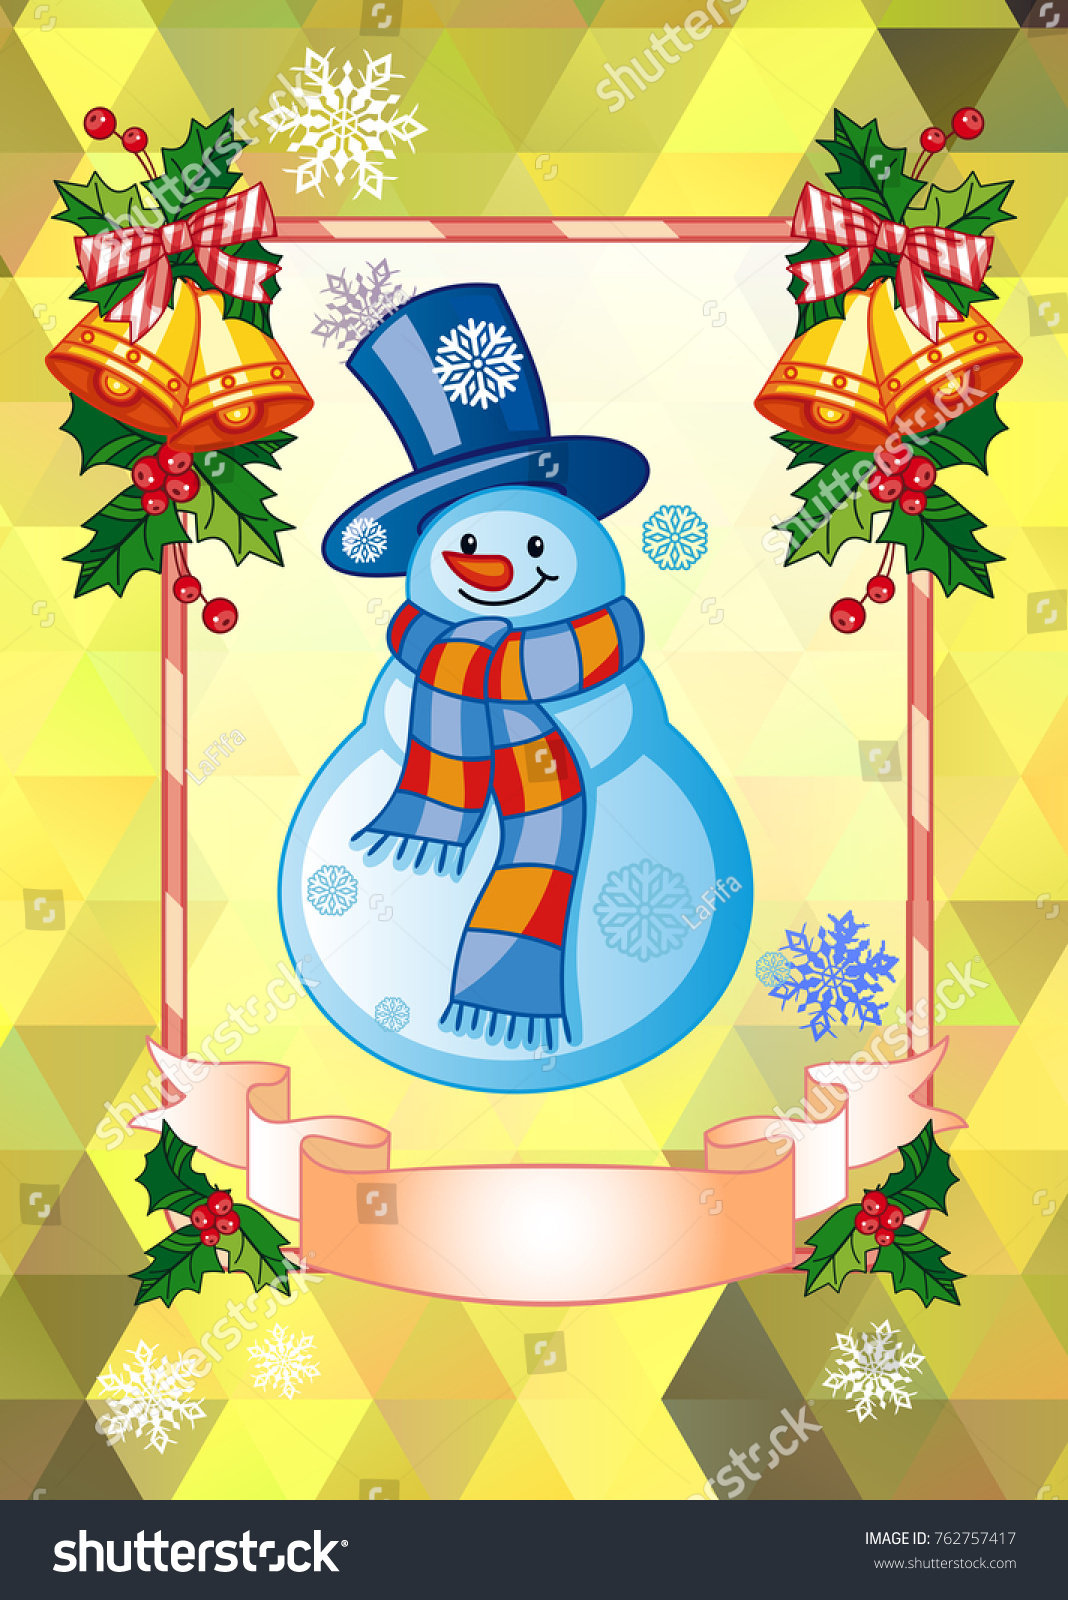 Holiday Christmas Card With Funny Snowman On A Colorful Mosaic